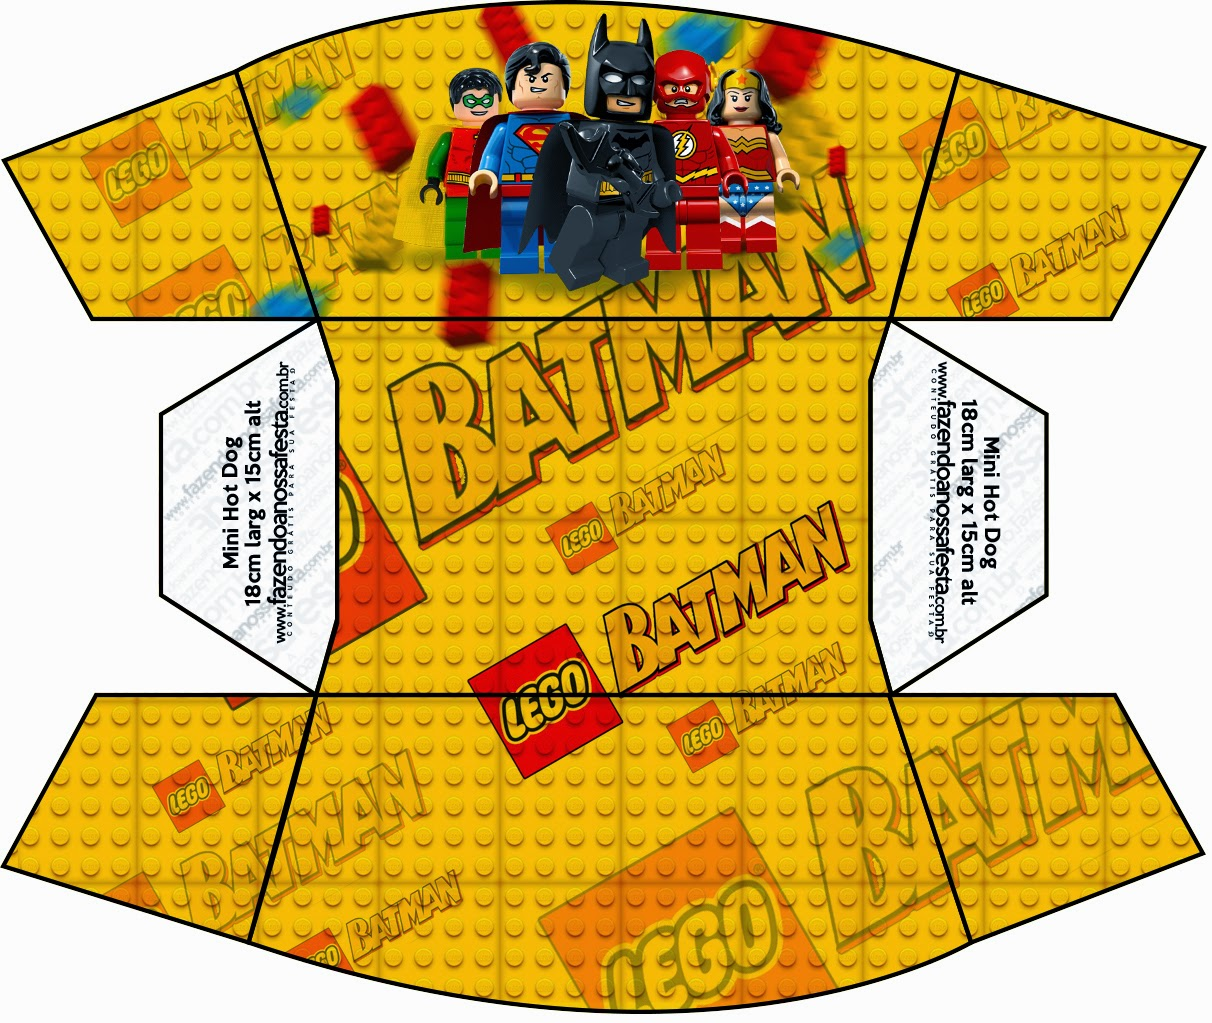 th?id=OIP.SbO5xeVD3sxzqfXDkqyREgEsD9&pid=15.1 along with lego batman coloring pages free printable 1 on lego batman coloring pages free printable as well as lego batman coloring pages free printable 2 on lego batman coloring pages free printable besides lego batman coloring pages free printable 3 on lego batman coloring pages free printable including iron man clip art to color on lego batman coloring pages free printable